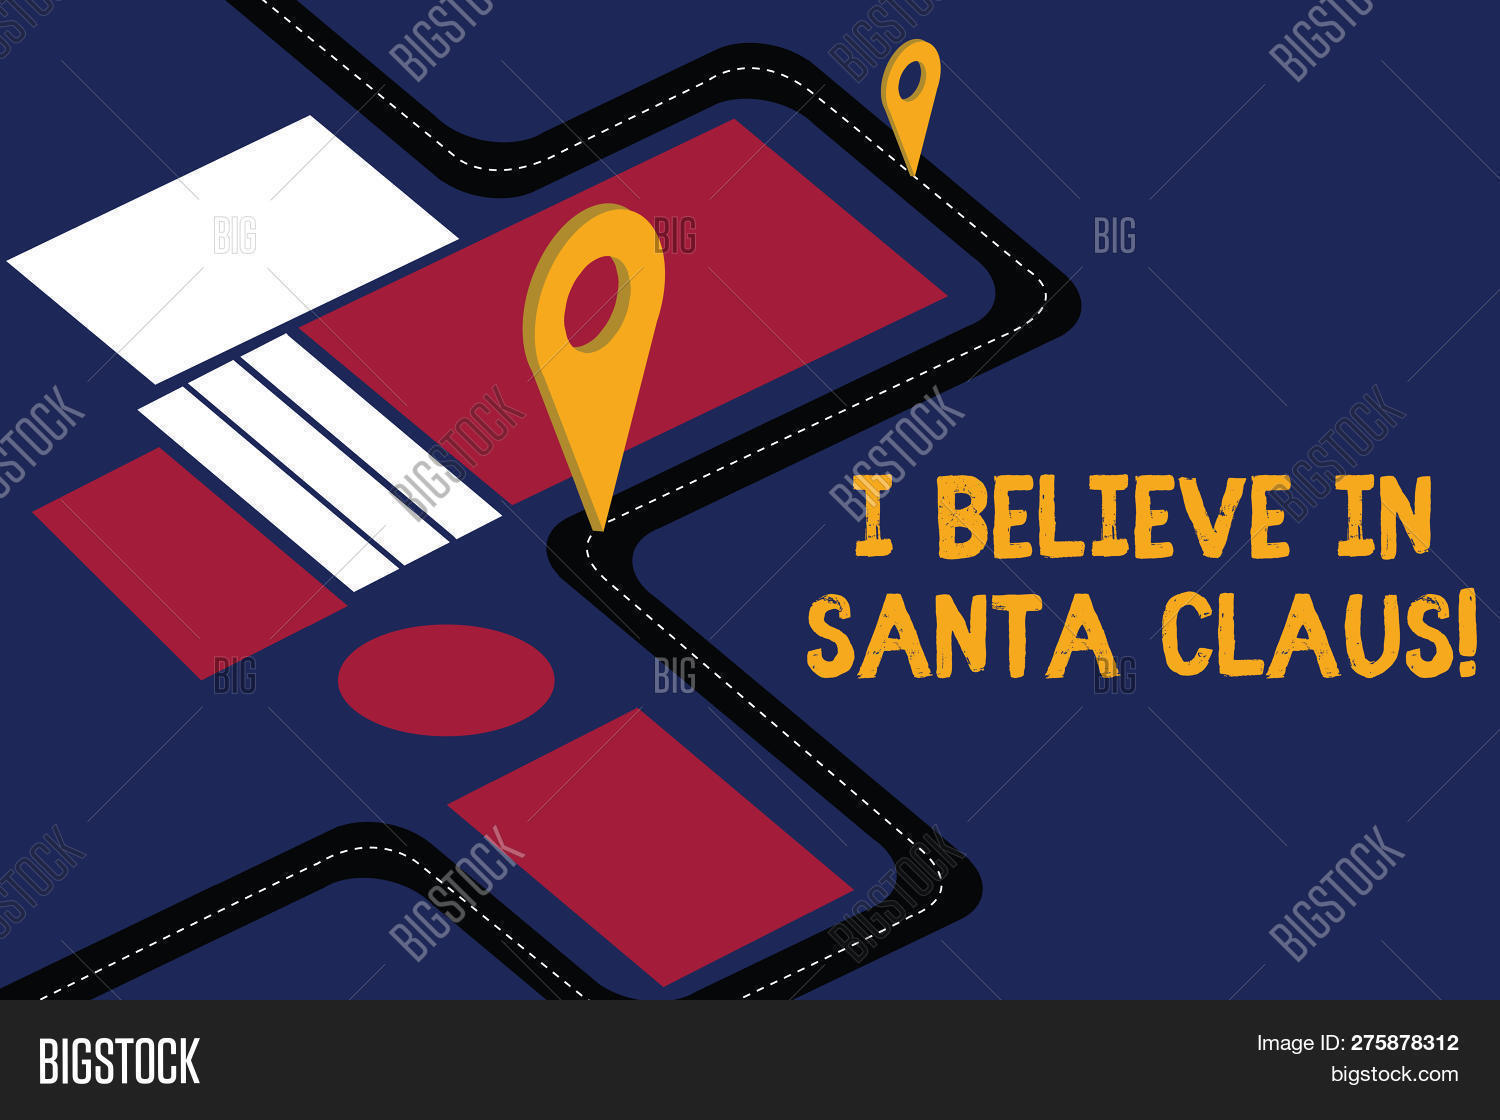 I Believe In Christmas.Writing Note Showing Image Photo Free Trial Bigstock